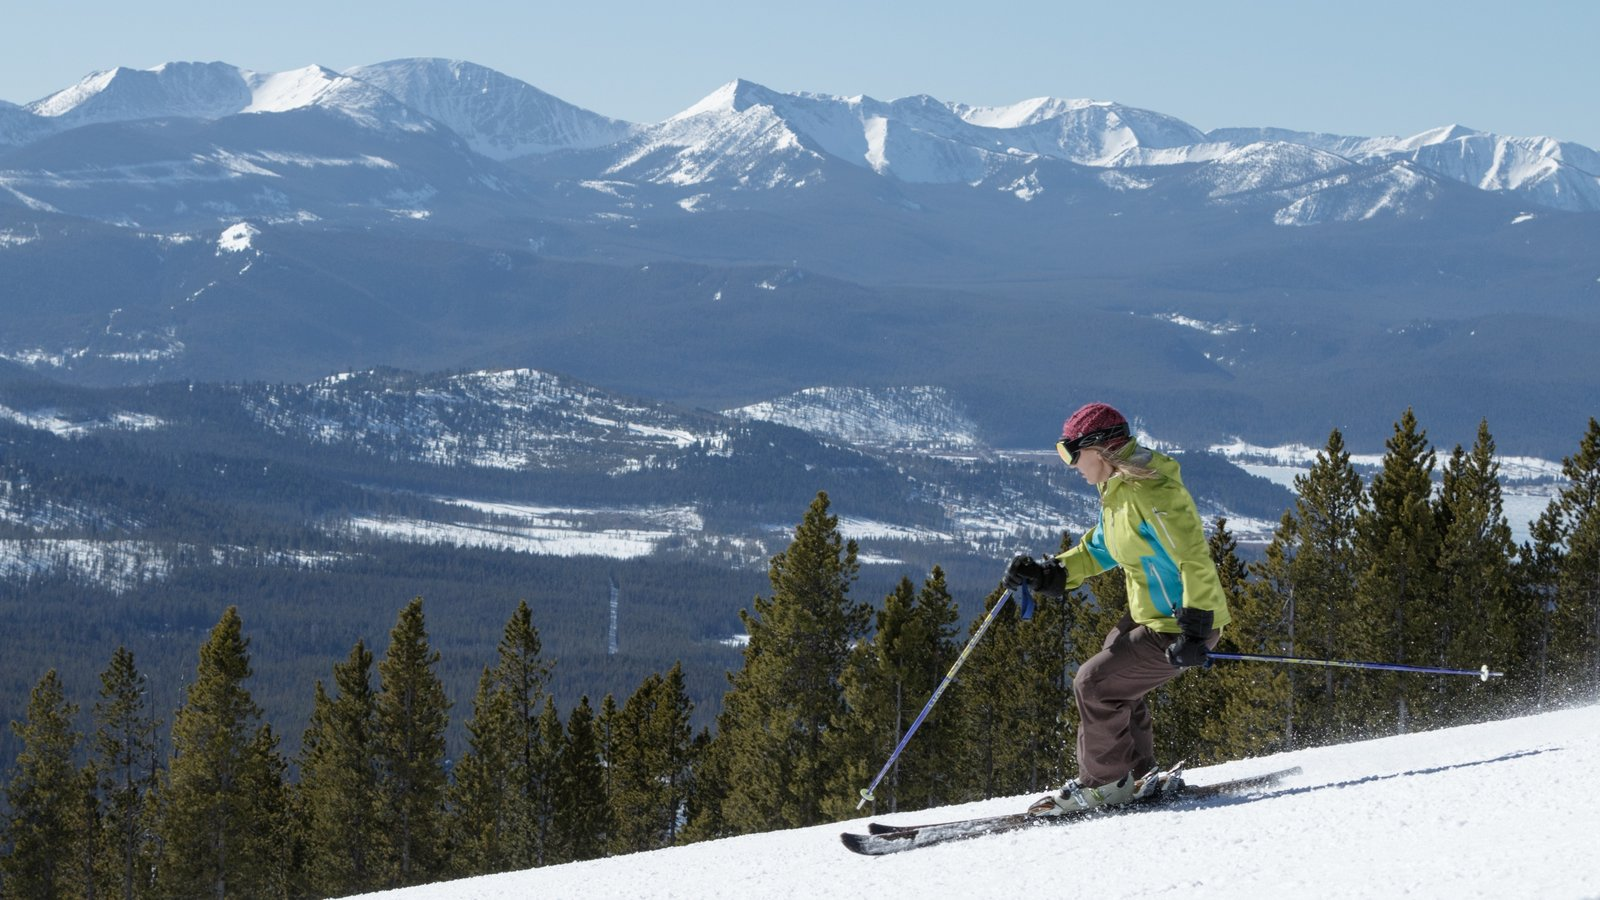 action & adventure pictures: view images of discovery ski area